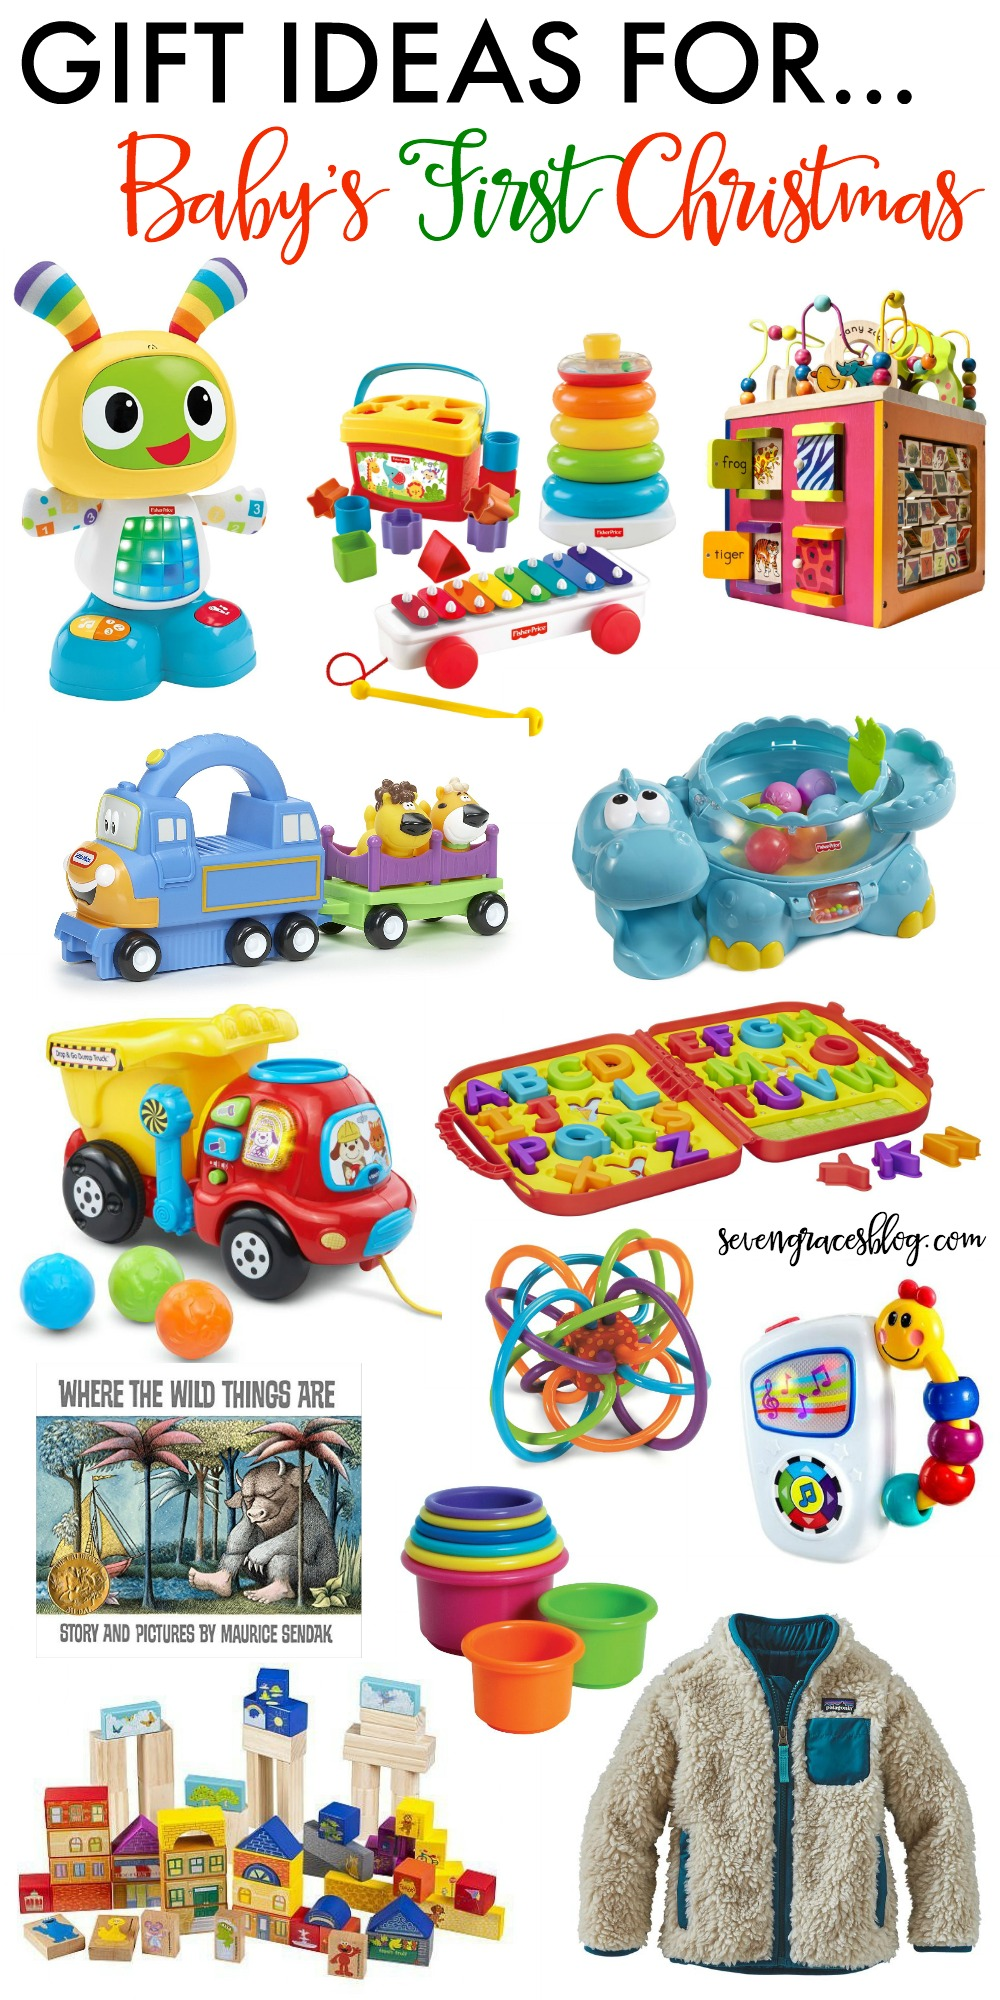 Toys And Gifts : Gift ideas for the preschool girl and baby s first